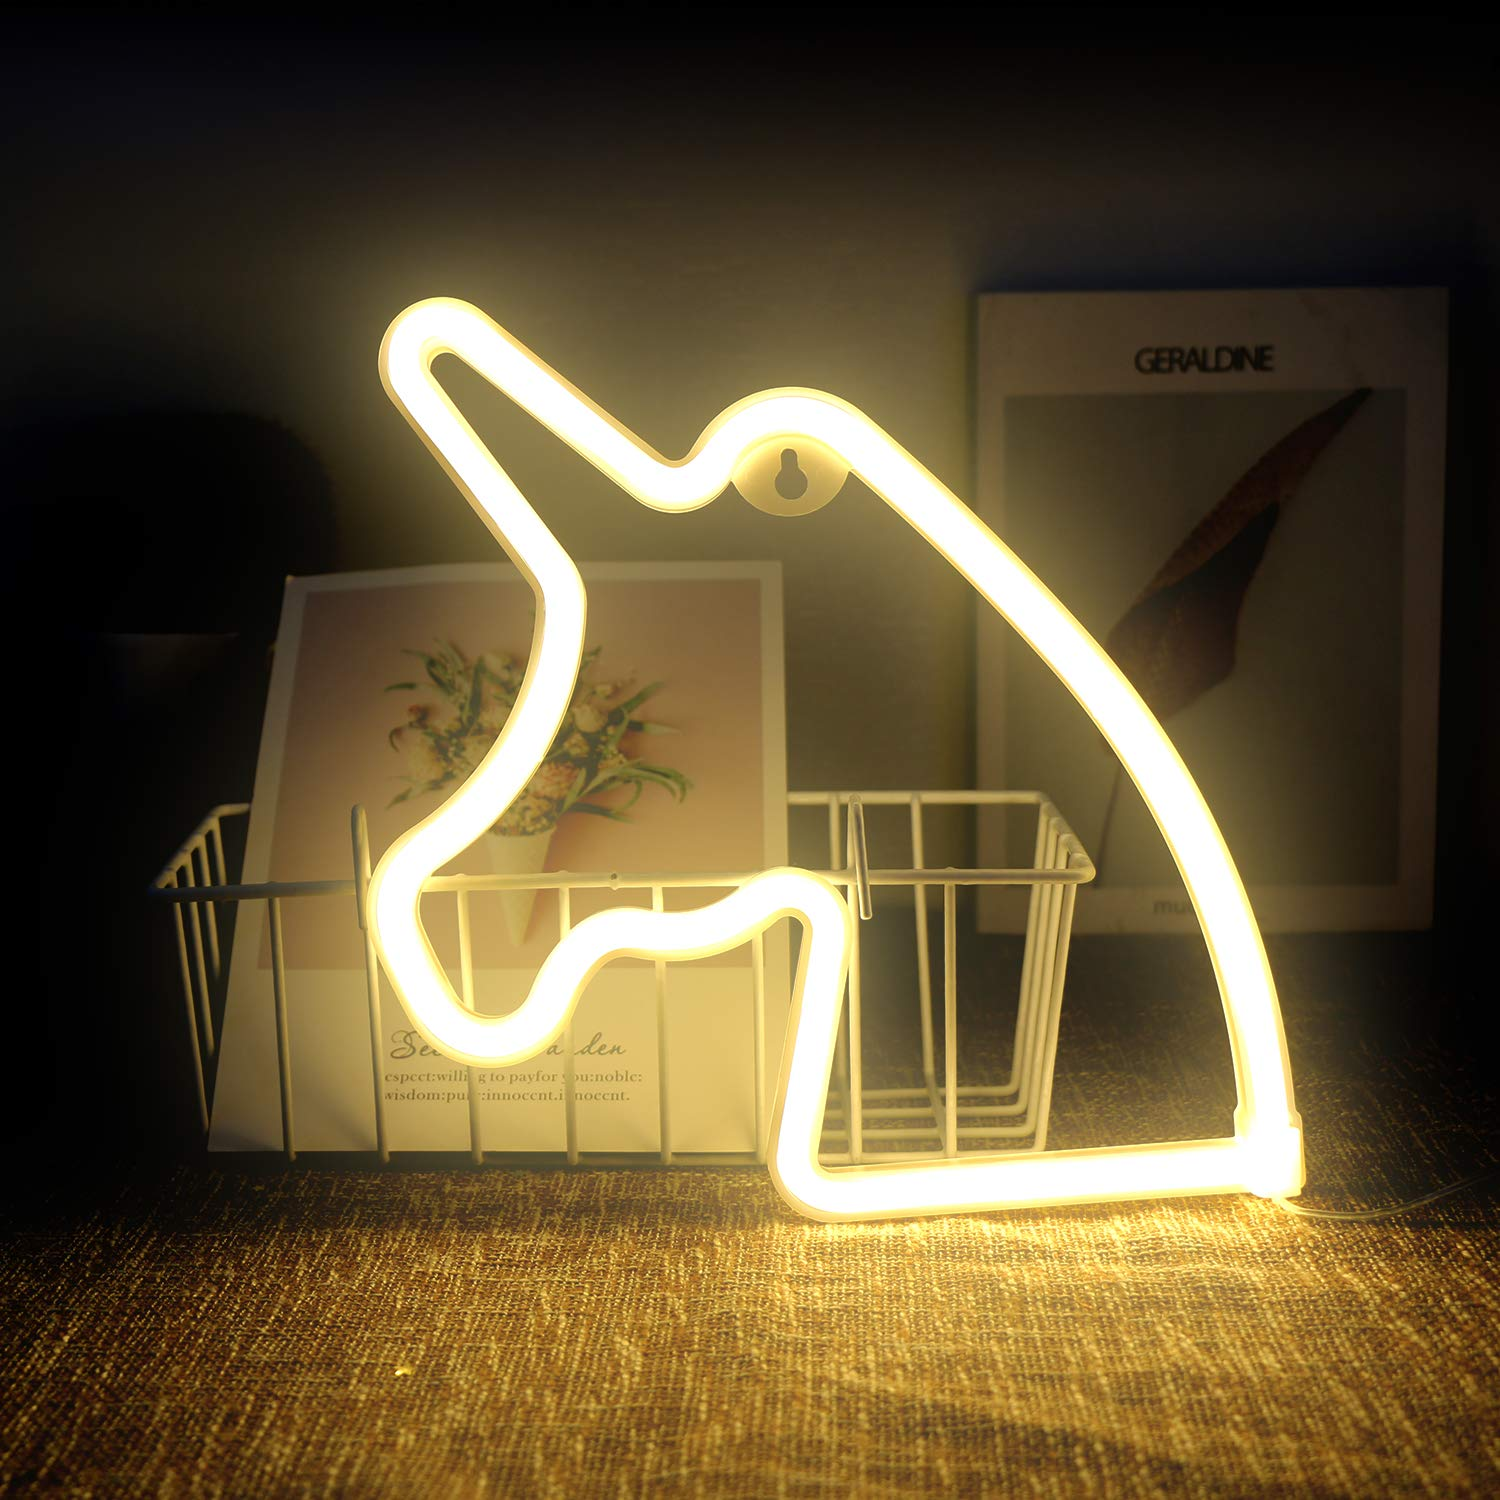 Neon Unicorn Signs Led Neon Signs For Wall Decor Led Safety Art Wall Decoration Lights Neon Lights Night Table Lamp With Battery Powered Usb For Kids Gift Home Wedding Baby Room